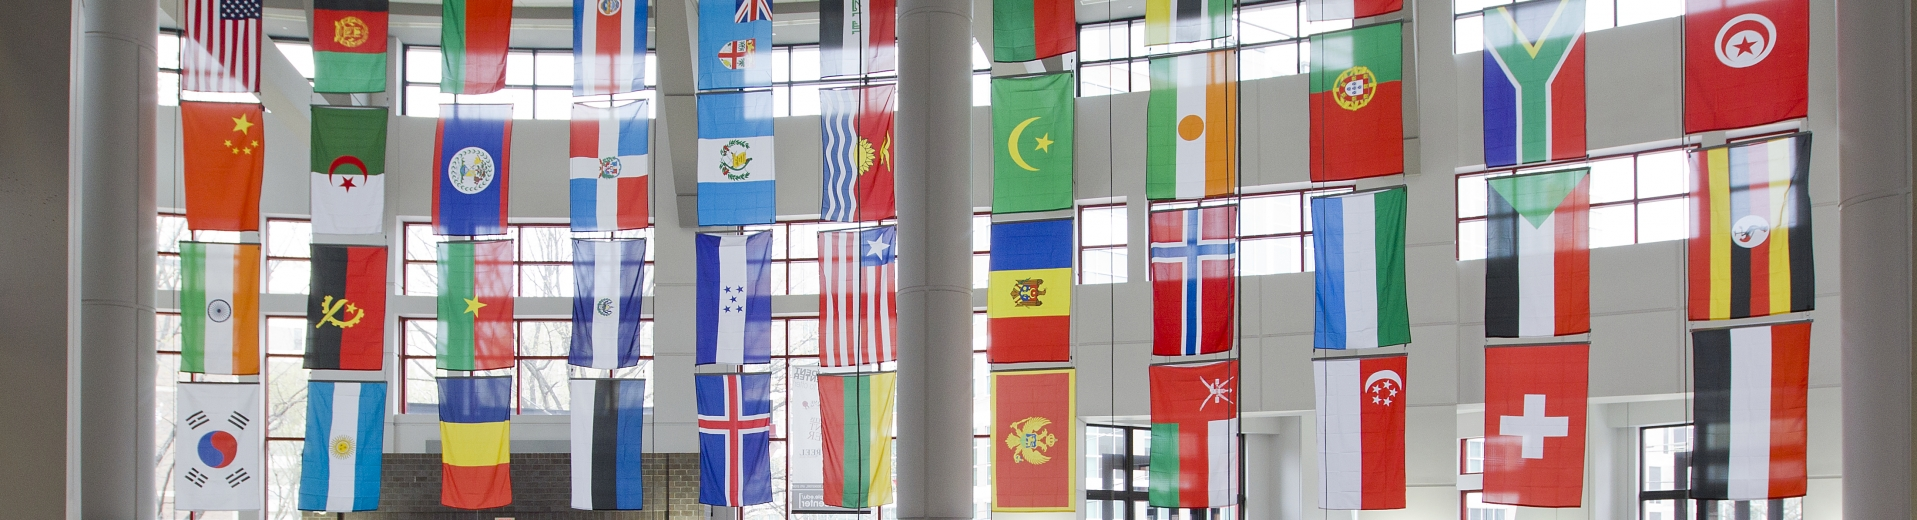 Country flags hang from the ceiling in the Temple University student center.